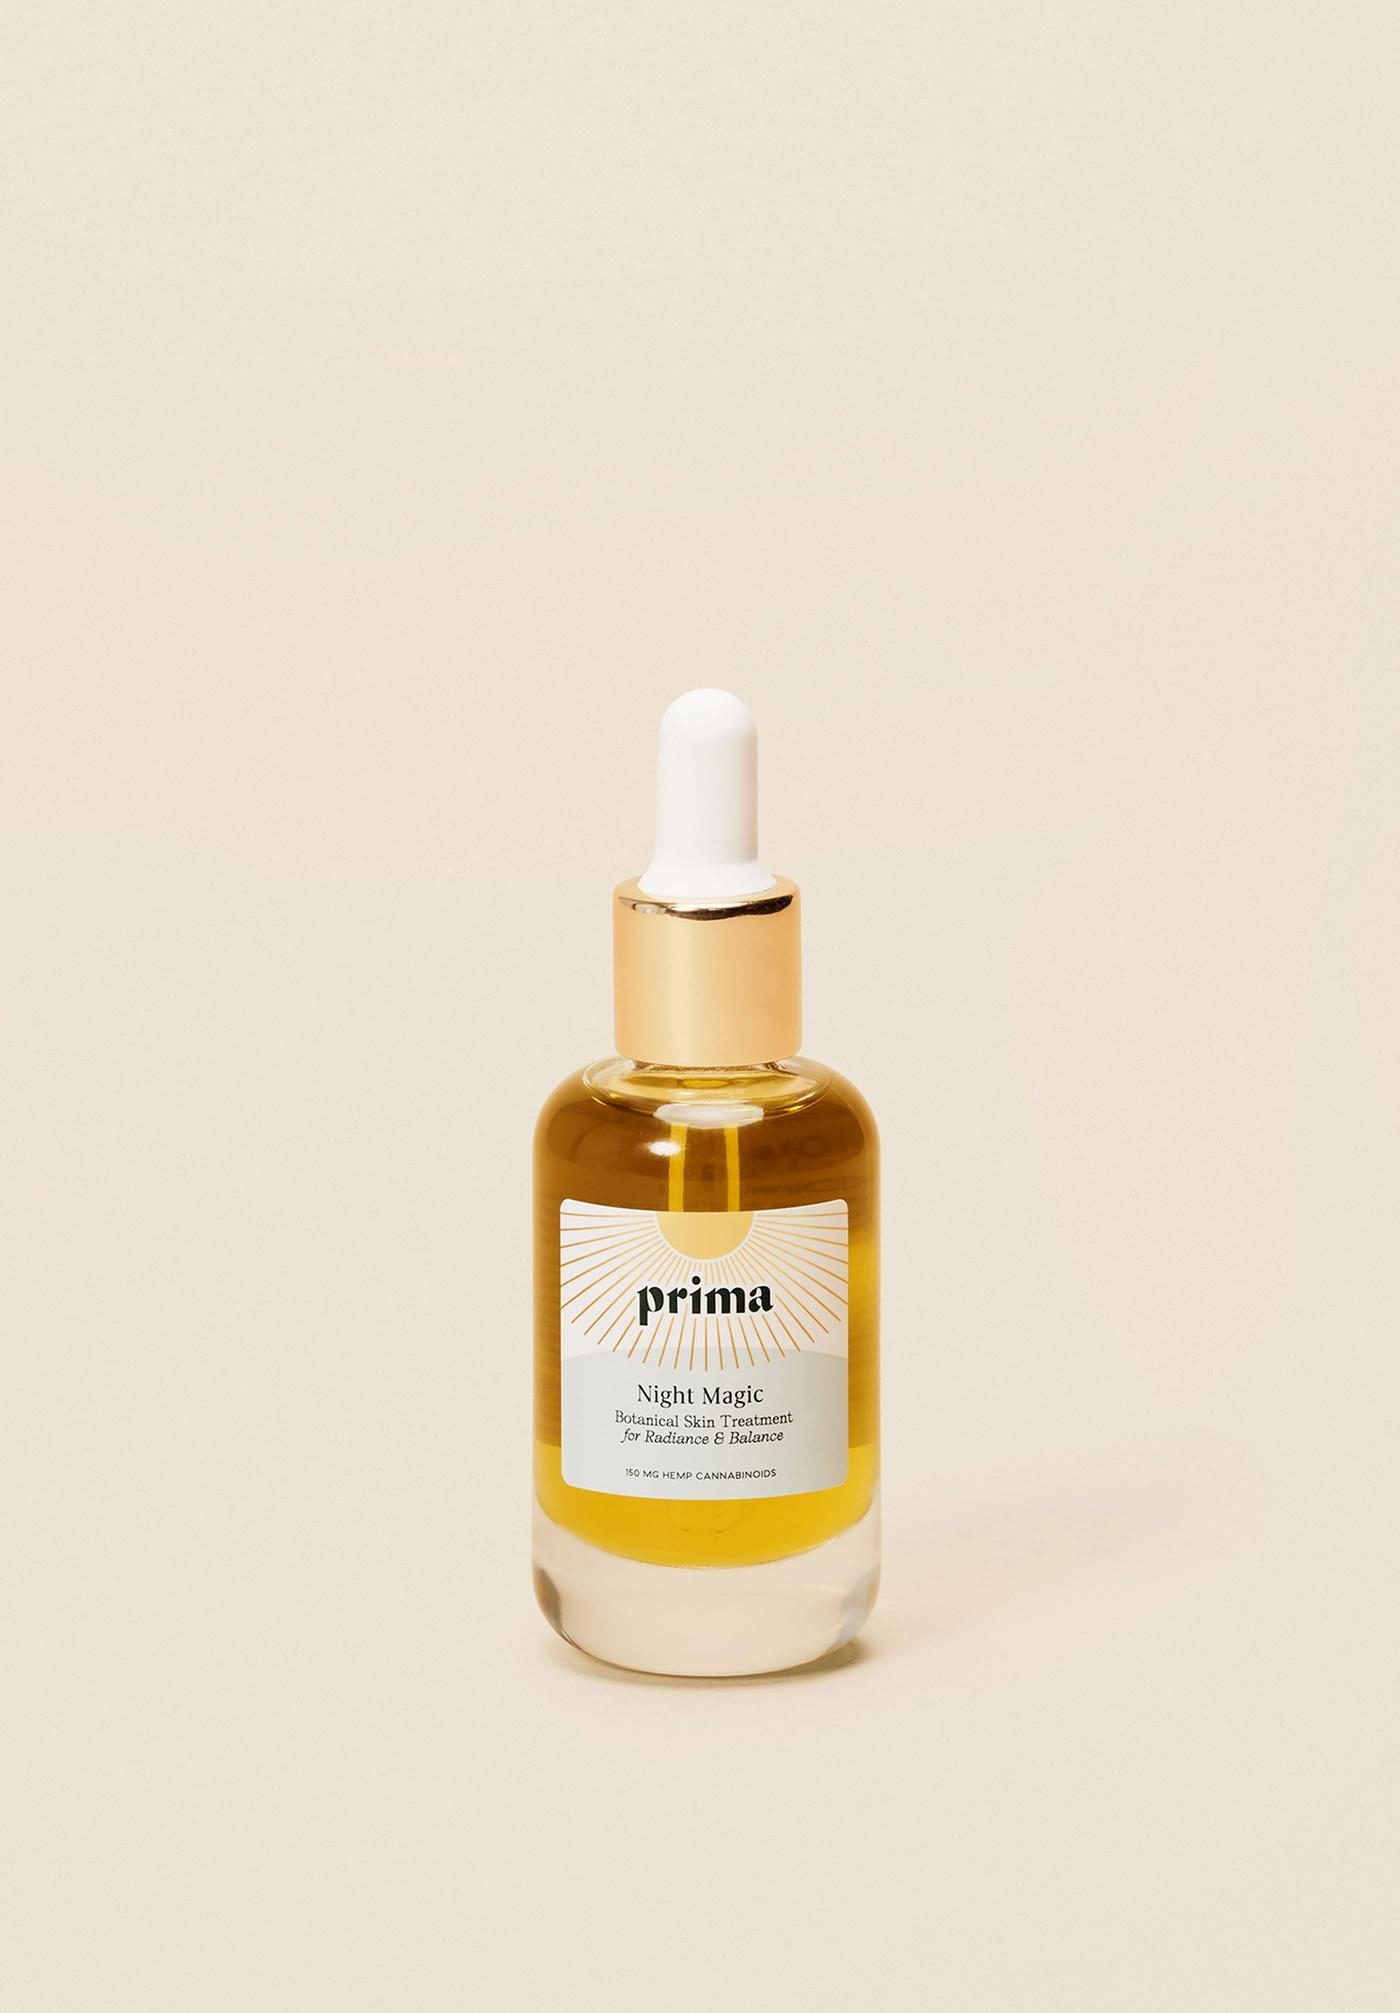 Prima's Night Magic: CBD Hemp Oil for skin